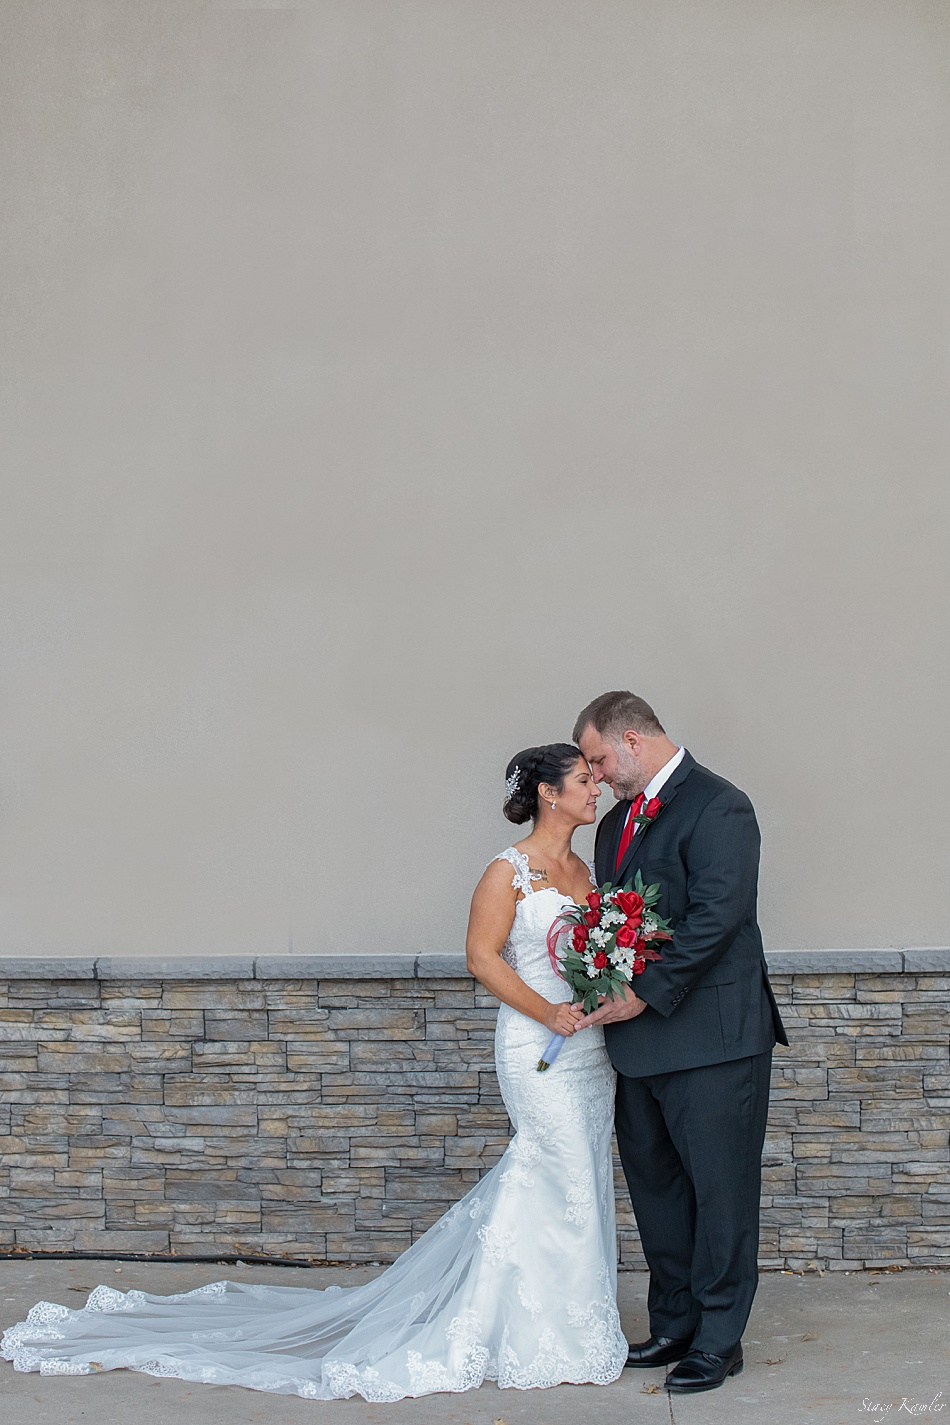 Full length photos of bride and groom and red and white flowers